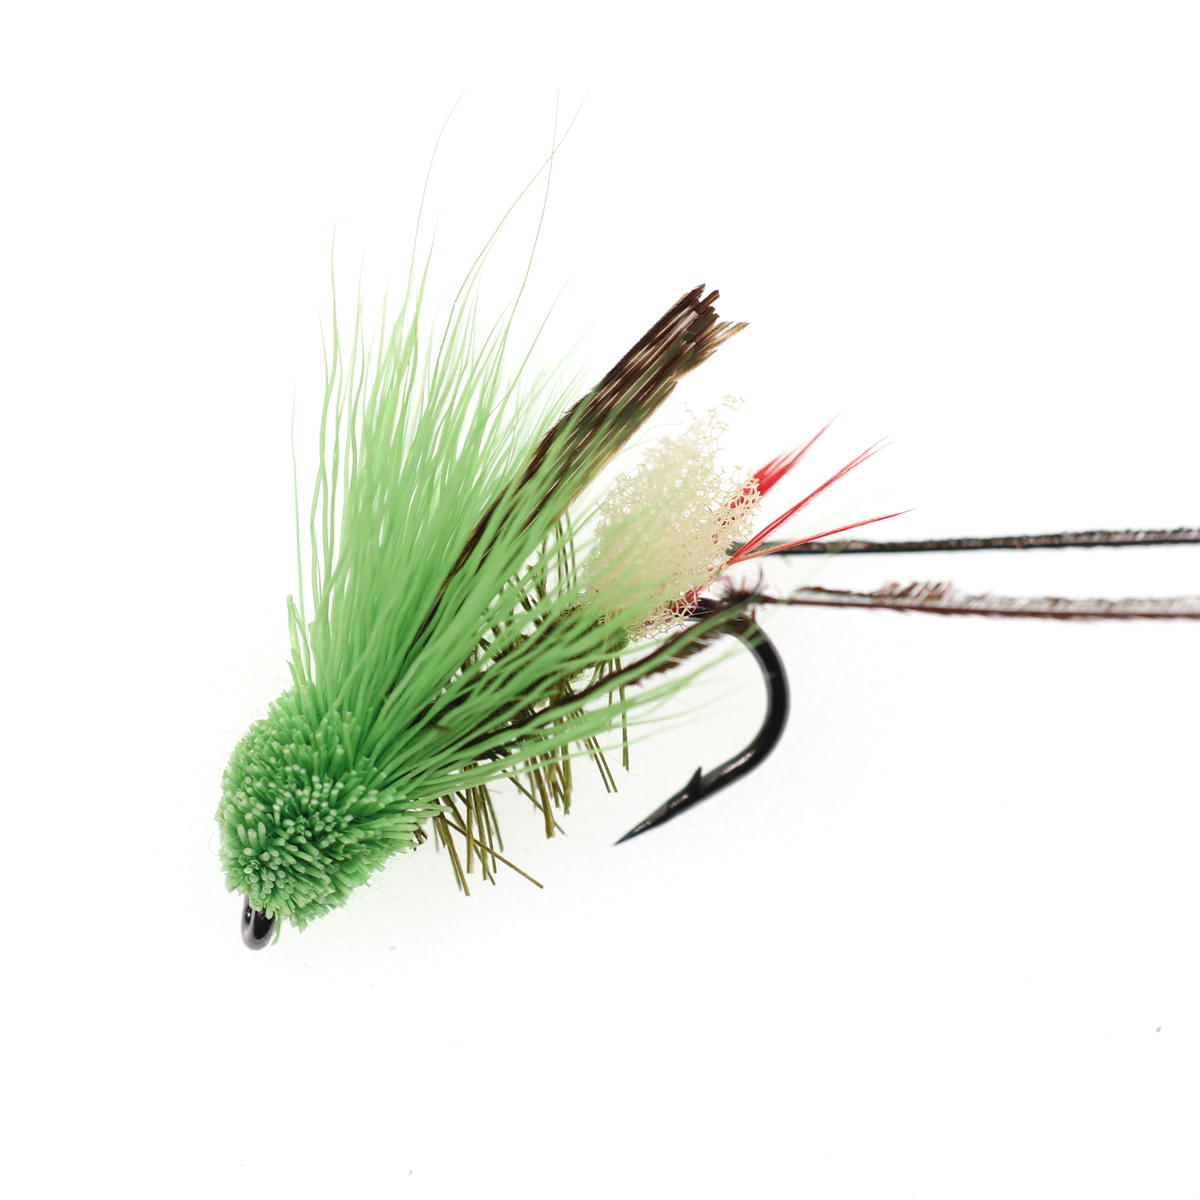 5PCS #10 Trout Fishing Fly Grass Hopper Fly terrestrial Hopper Fly Floating Bass Crappie Bug Bait Artificial Lure 13